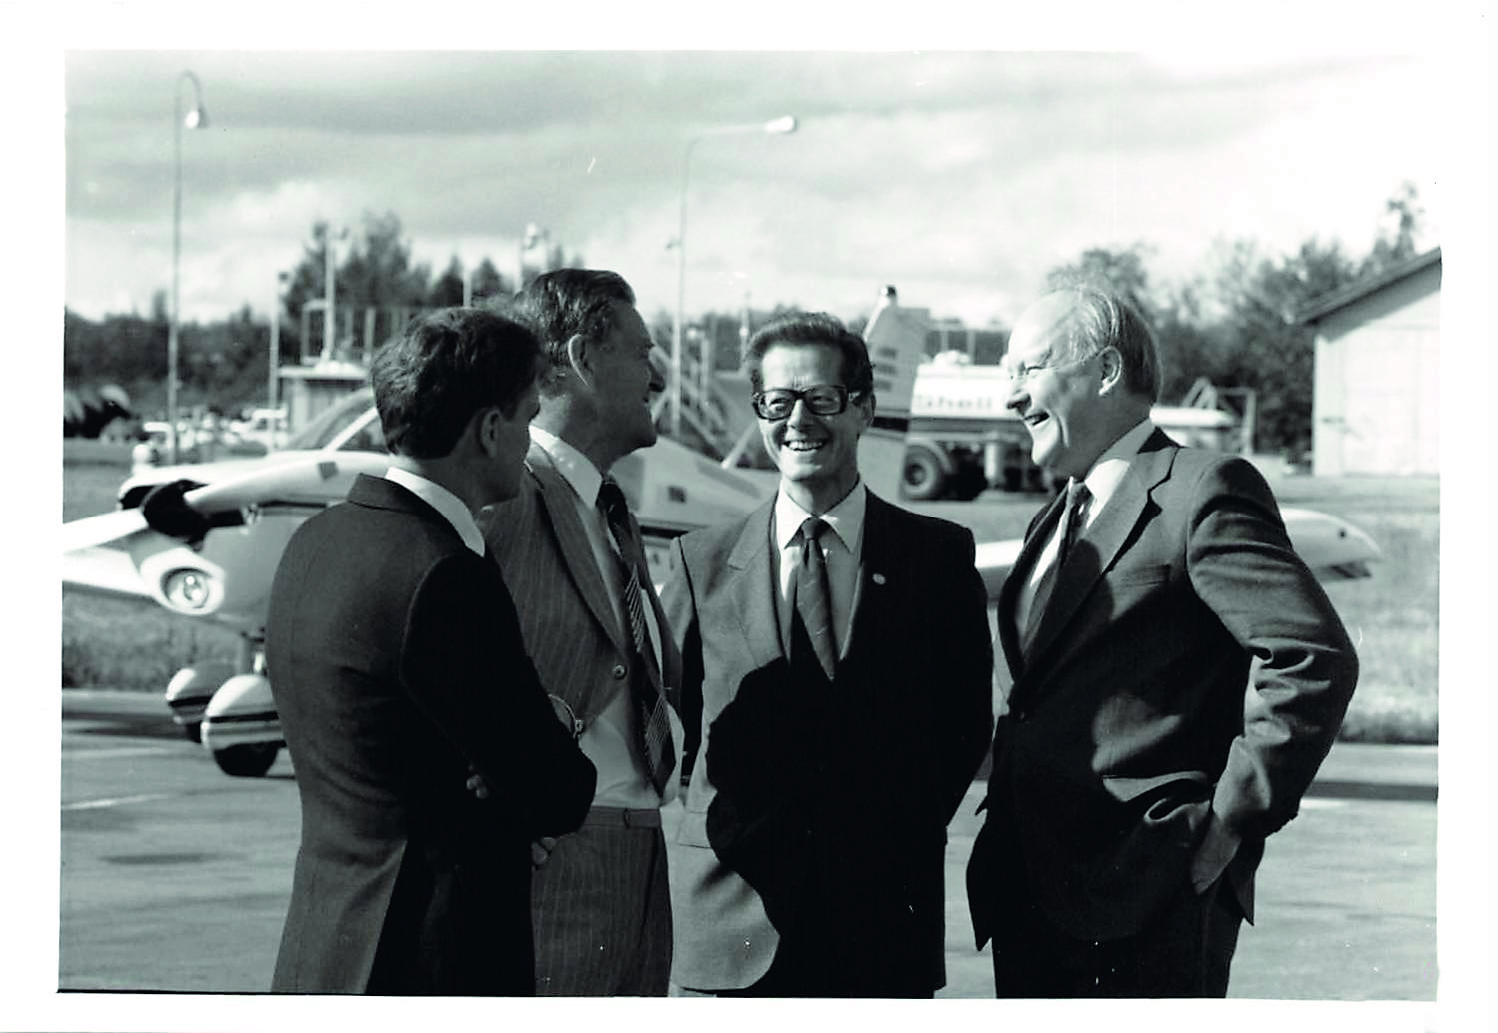 Professor emeritus Bengt Hultqvist before the inauguration of EISCAT, August 26 1981. © EISCAT Scientific Association